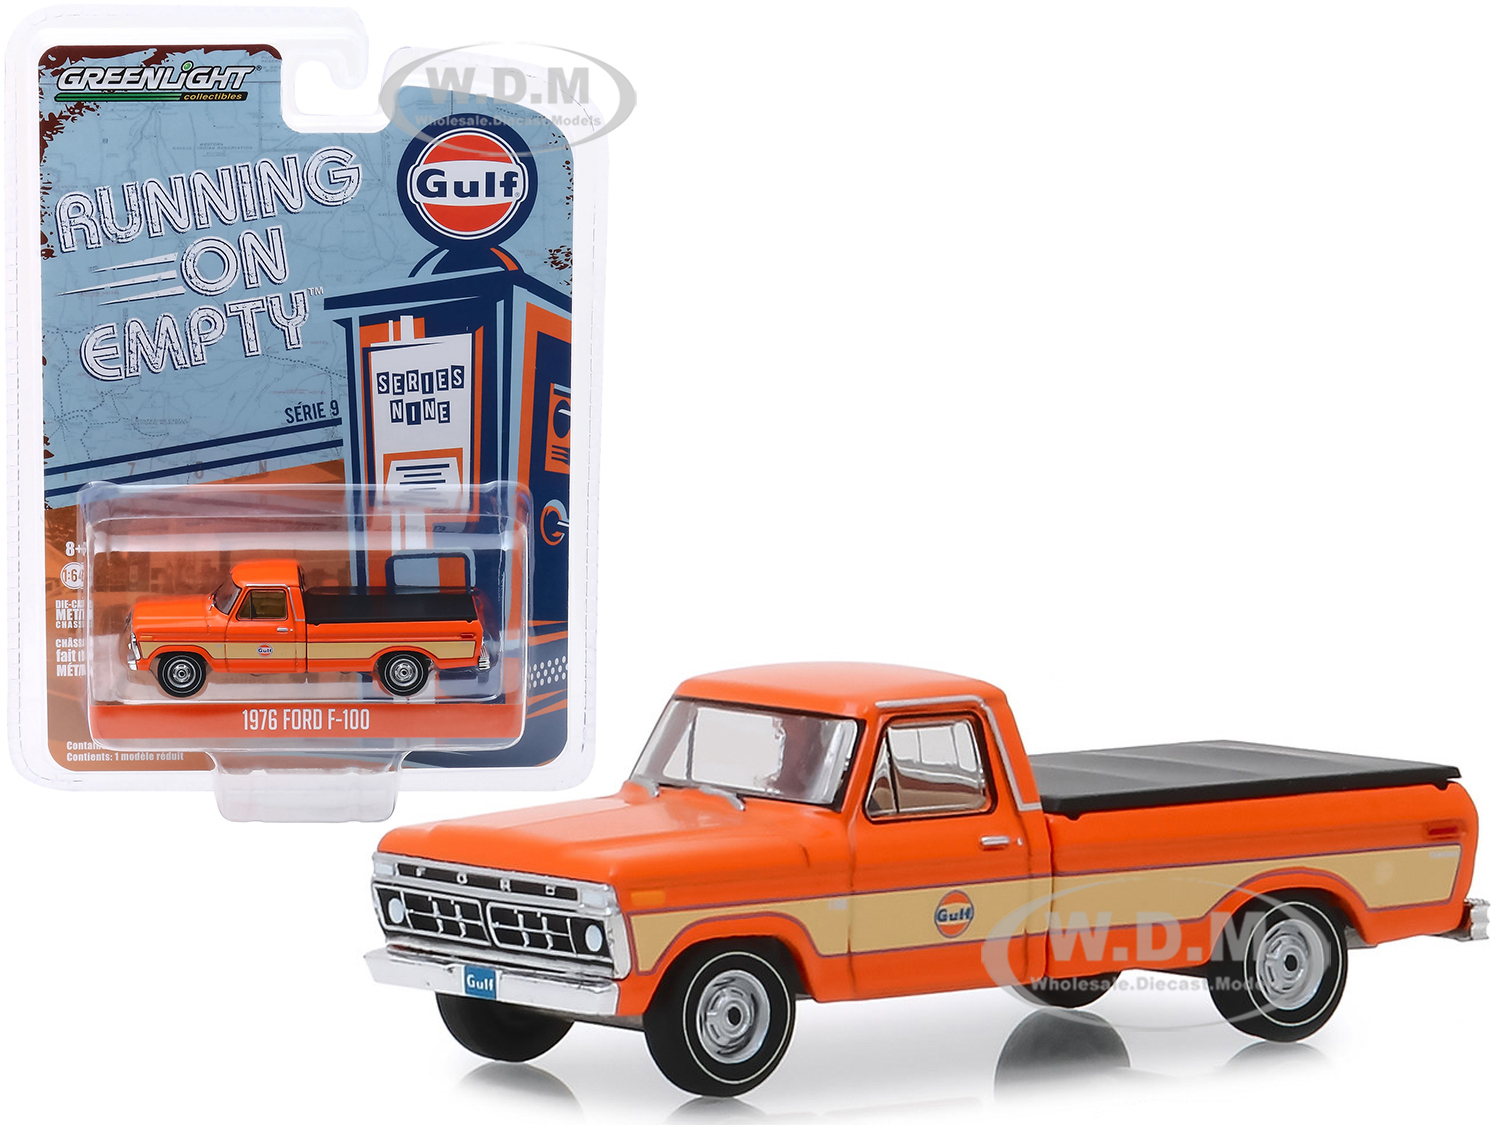 1976 Ford F-100 Pickup Truck with Bed Cover Orange